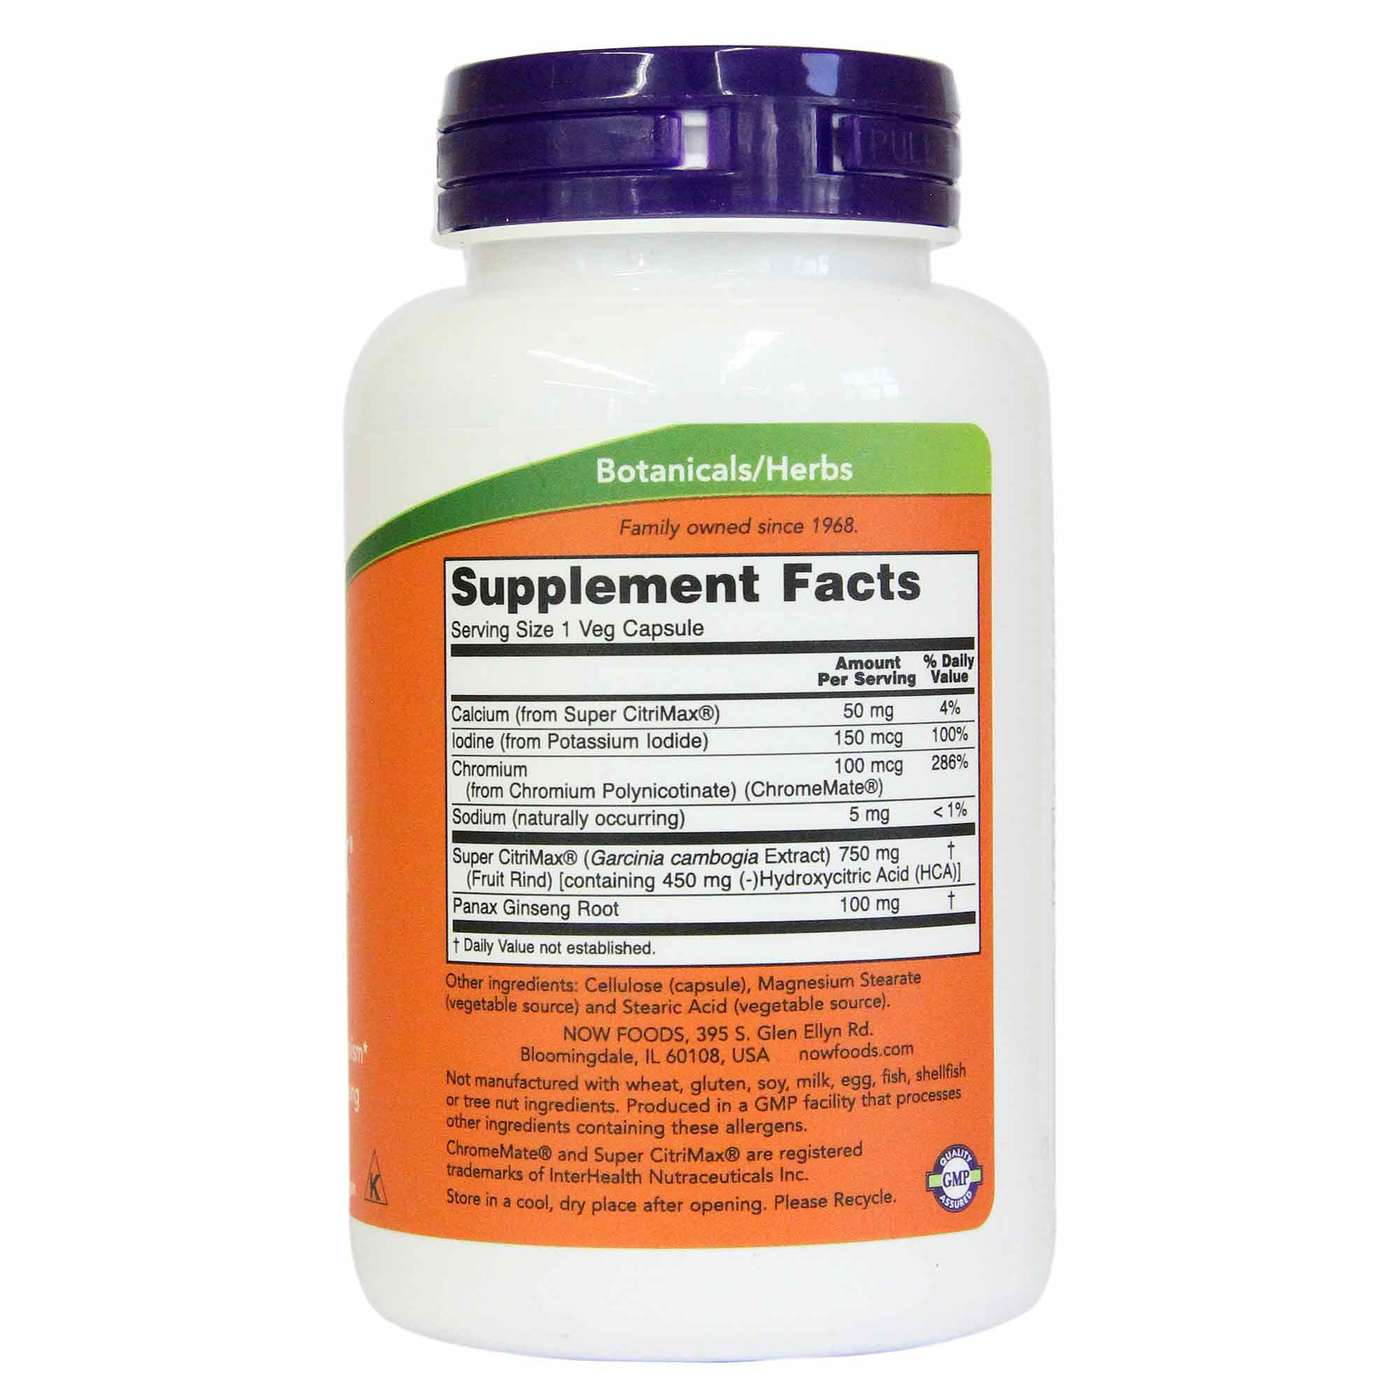 Weight loss supplements recalled image 2